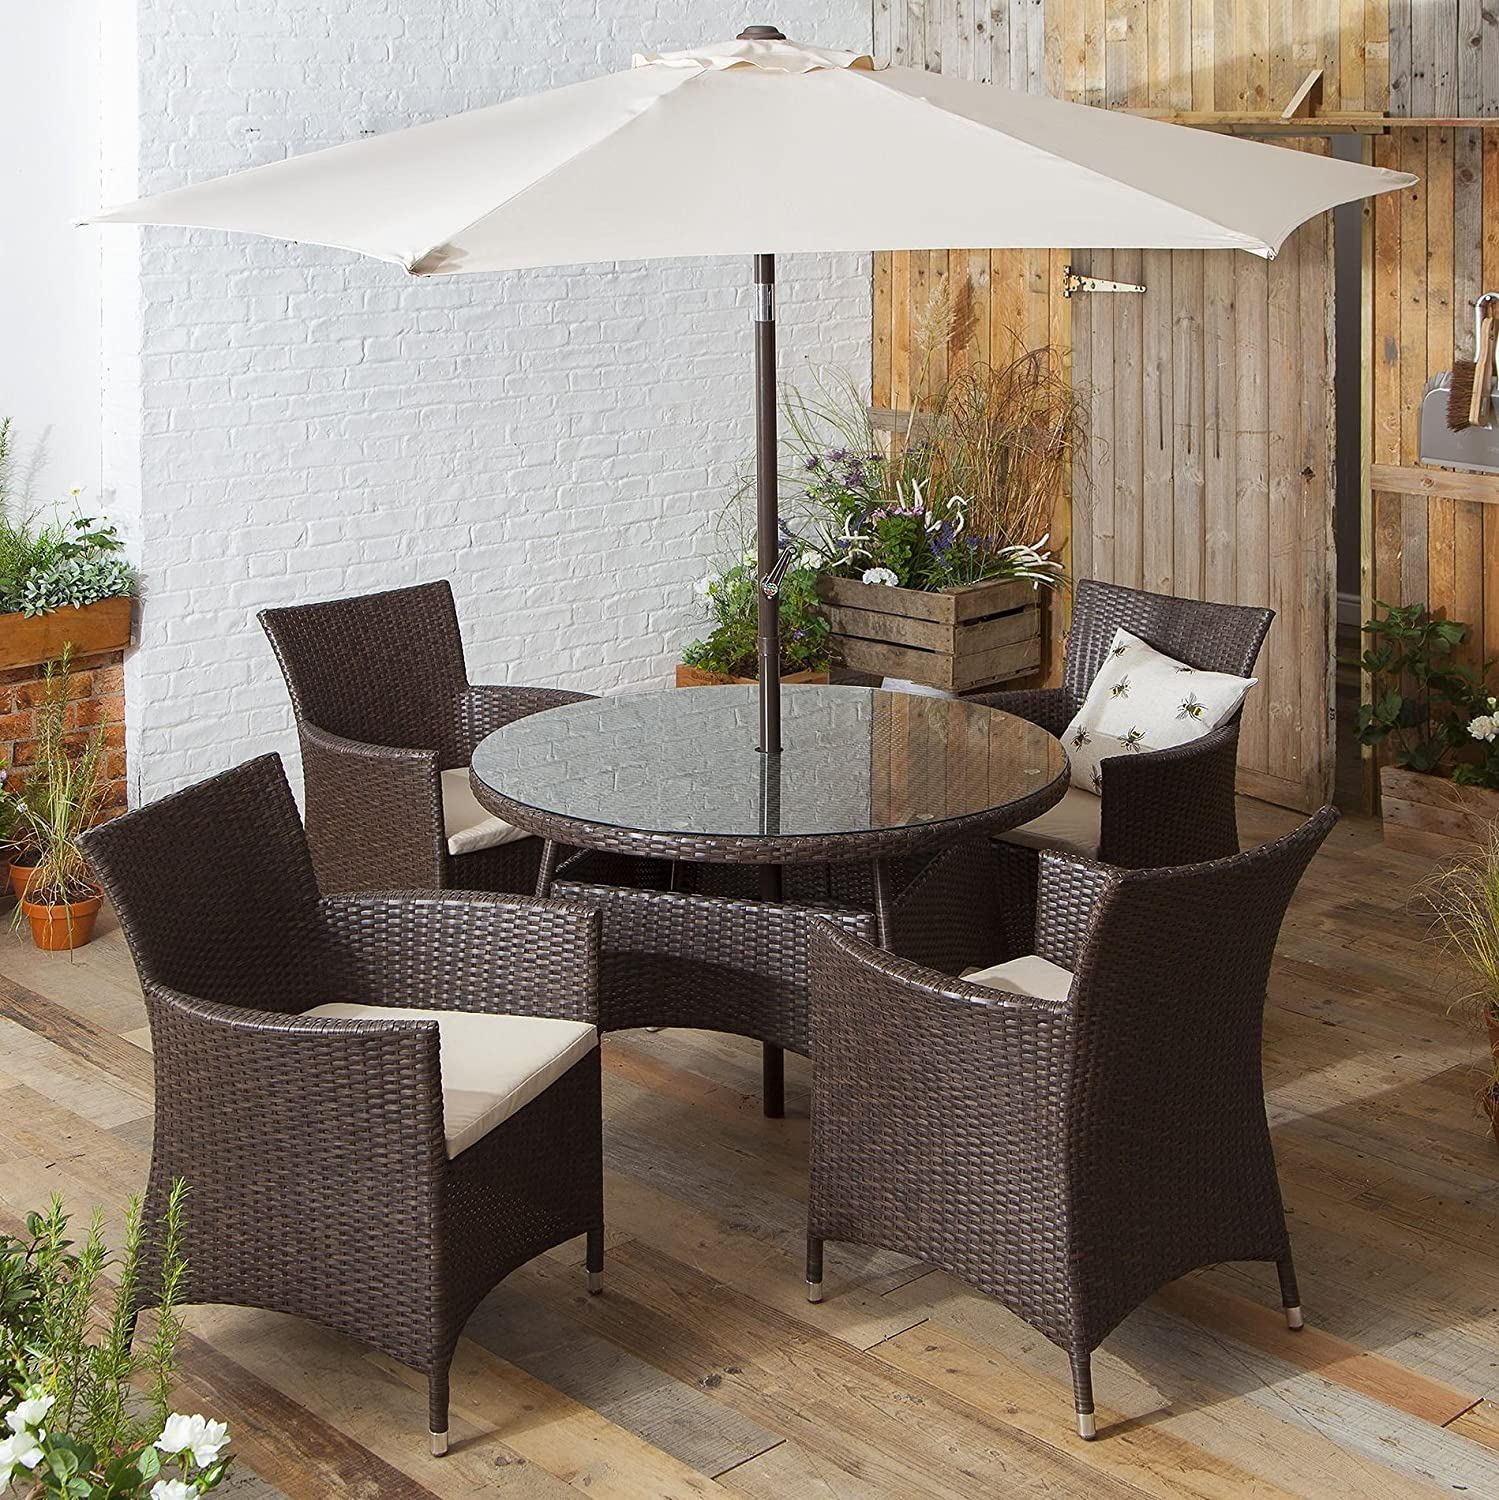 rattan 6 piece garden dining set table with parasol and 4 chairs brown amazoncouk kitchen home